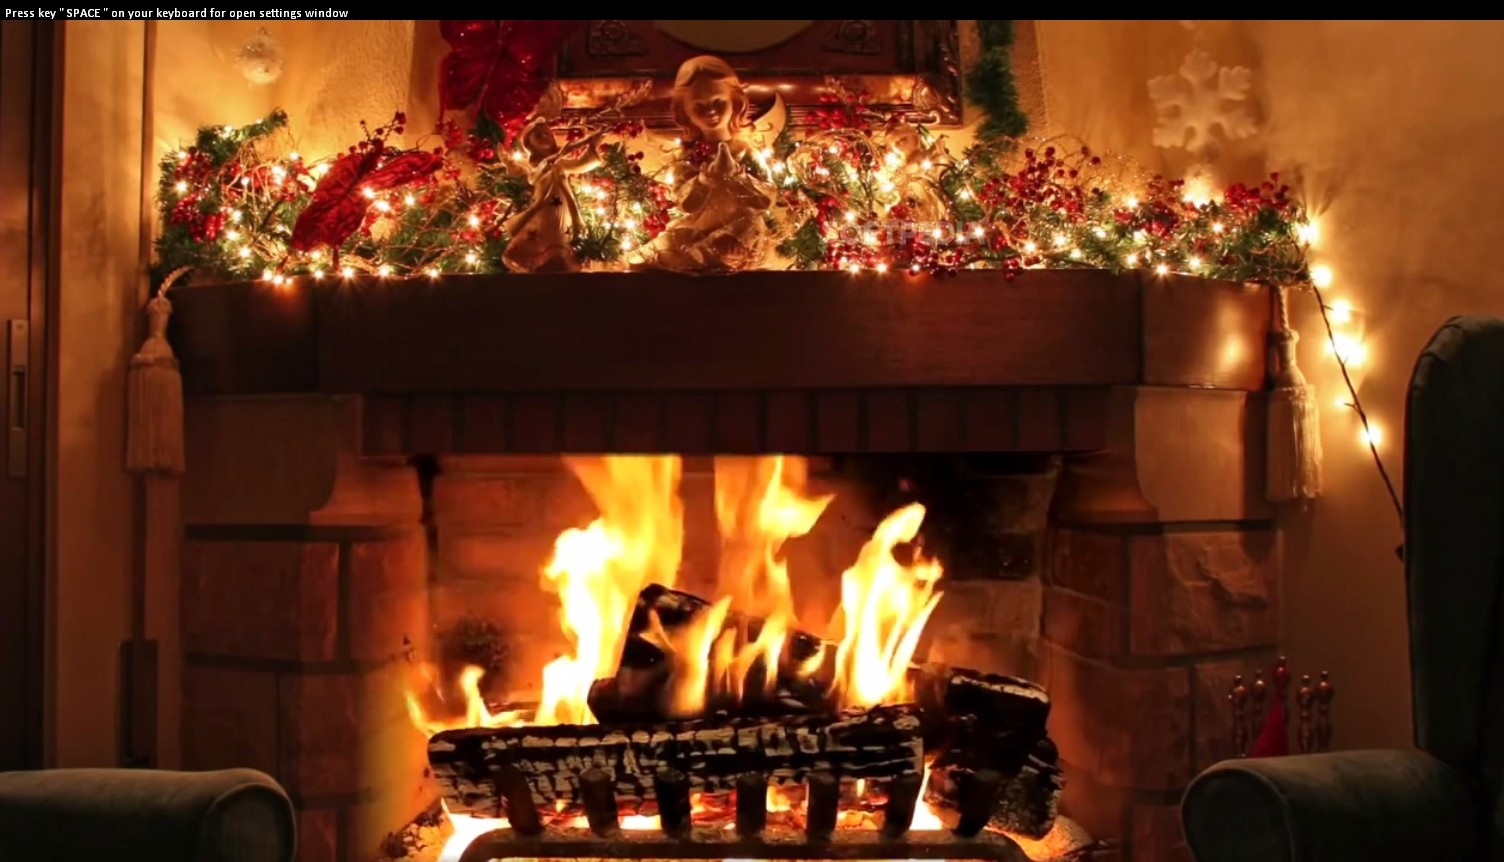 Christmas Fireplace Images amp Pictures   Becuo 1504x862